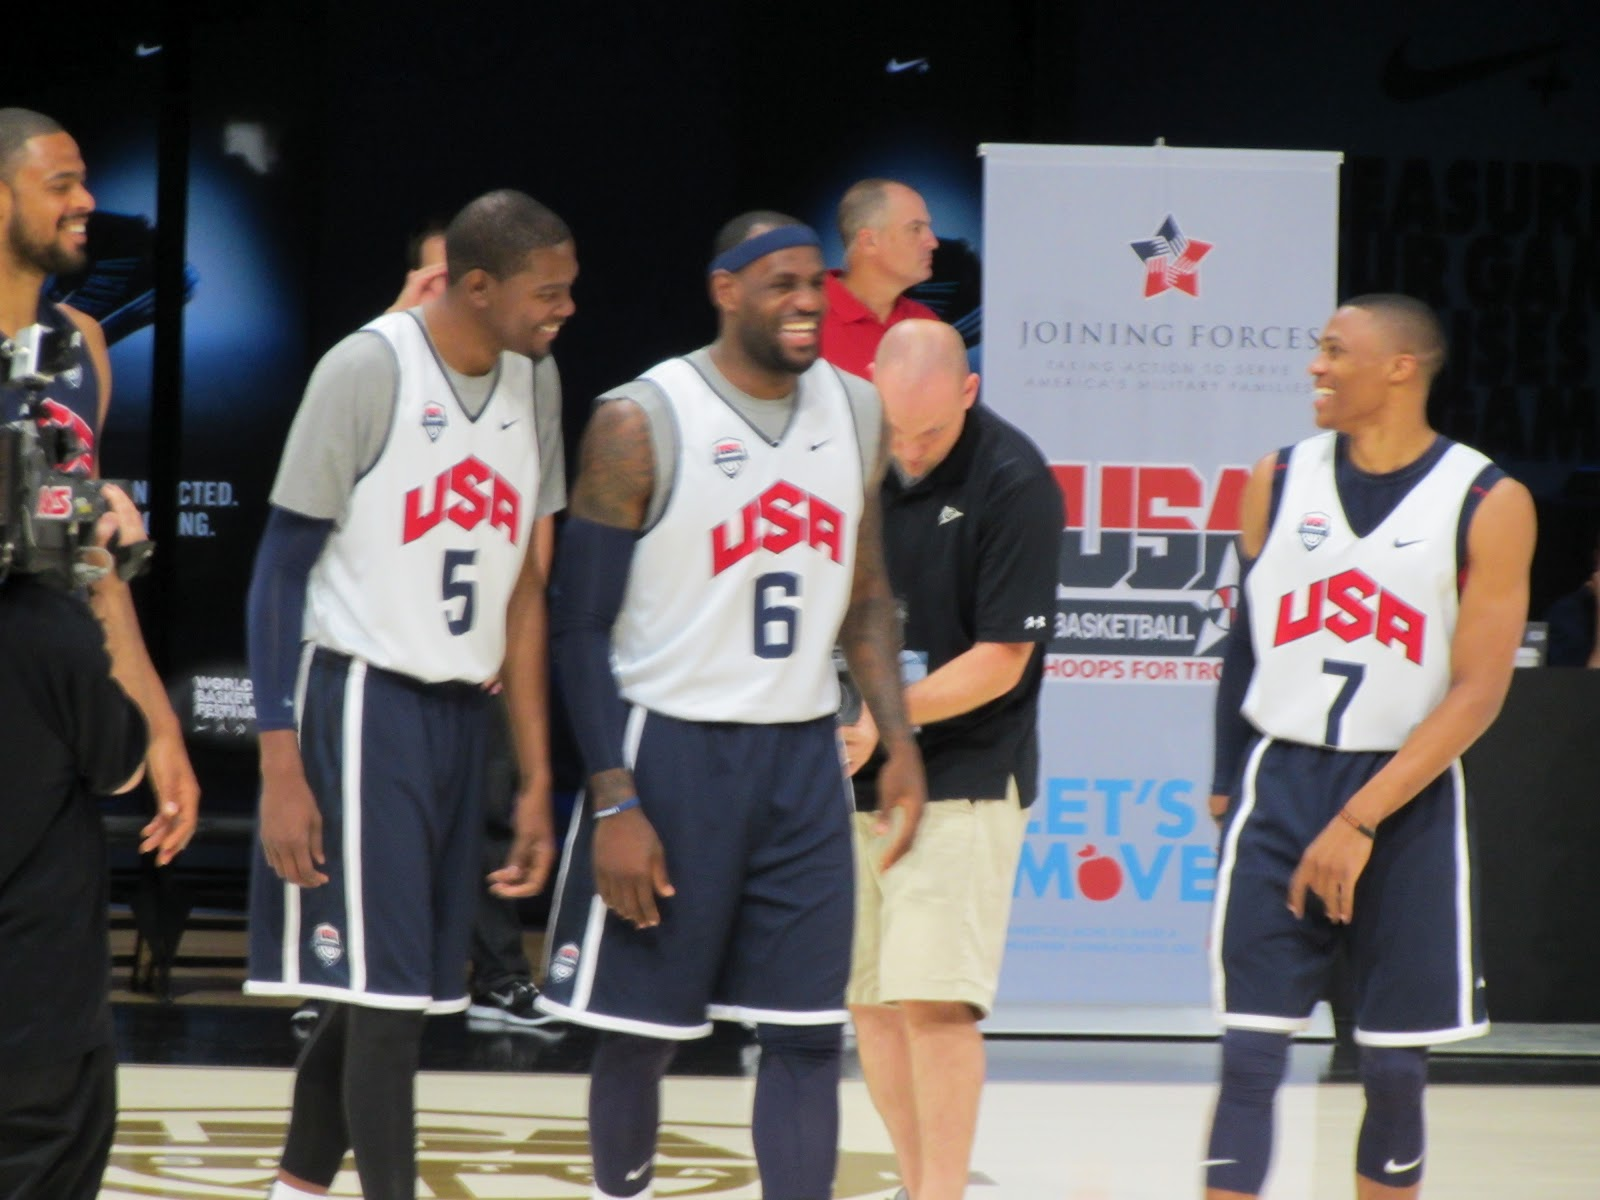 USA Basketball 2012